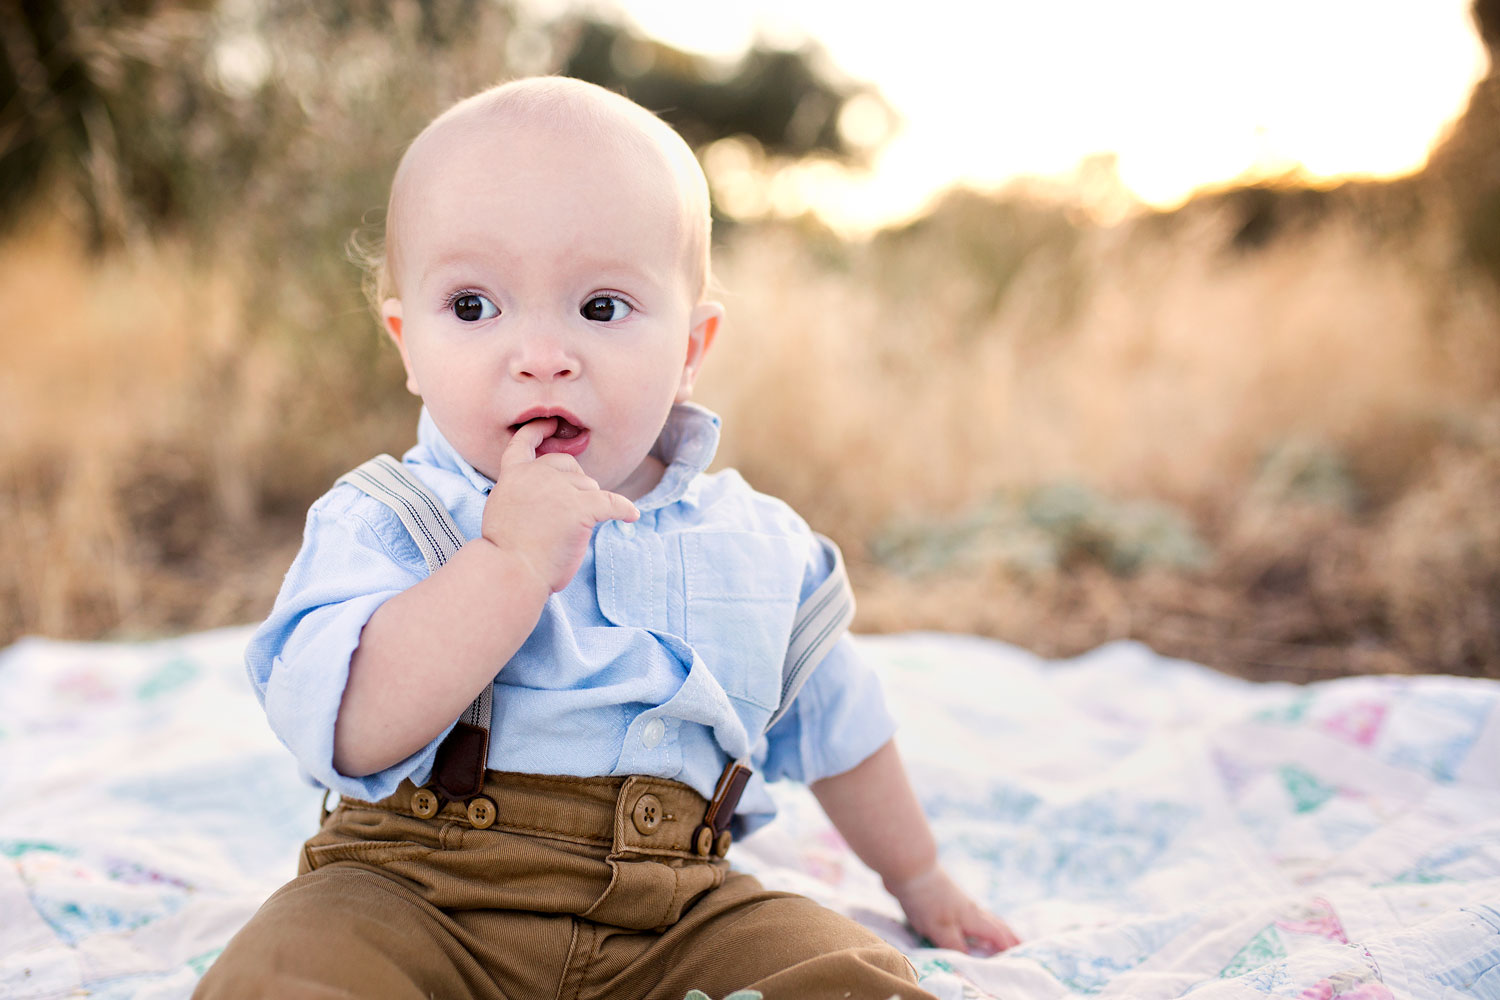 A One Year Old Baby Boy On a Blanket, Amy Wright Photography, Roseville Photographer